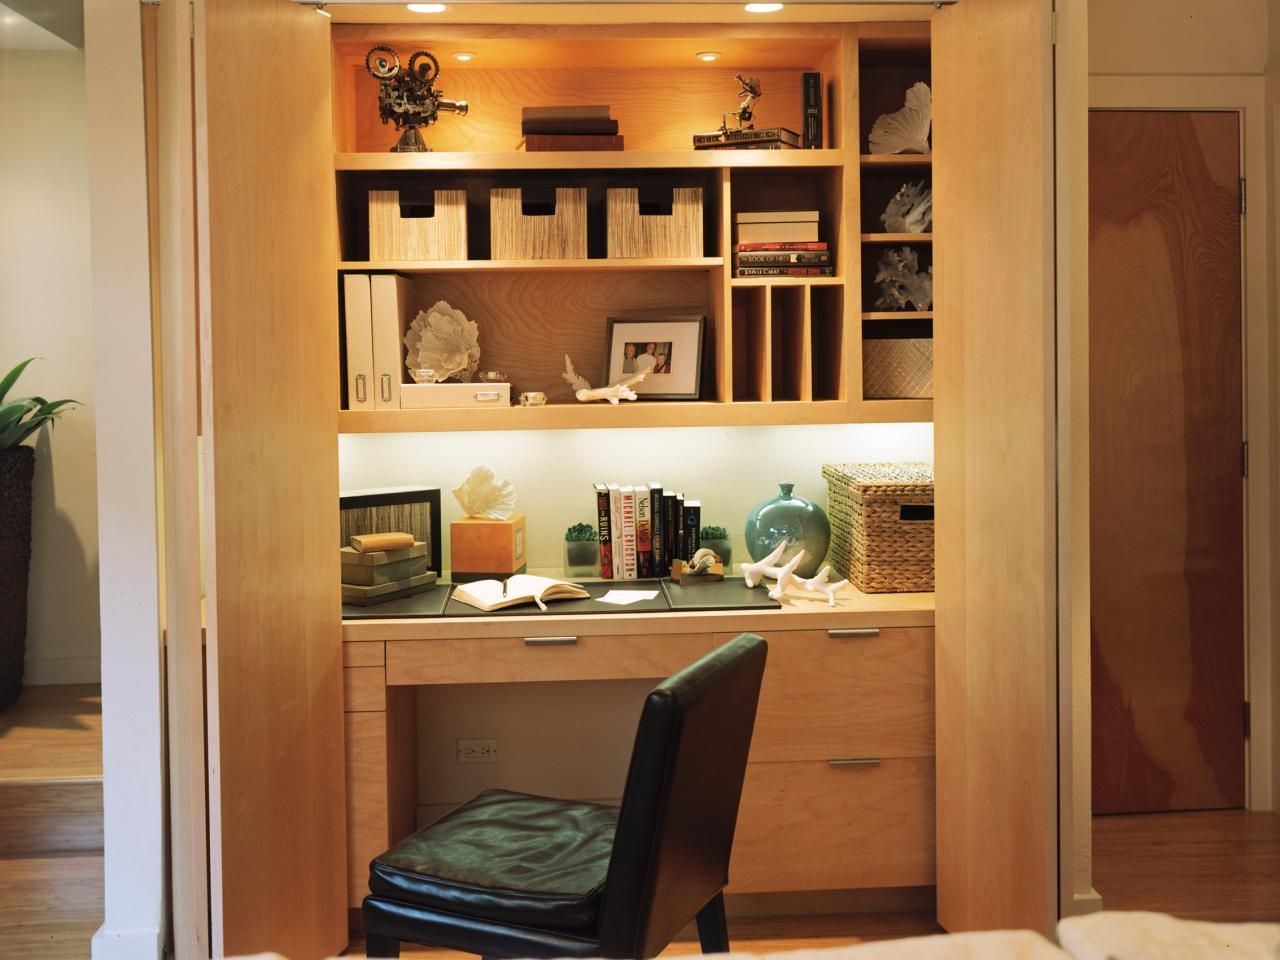 Concealed Closet Home Office With Built-In Desk